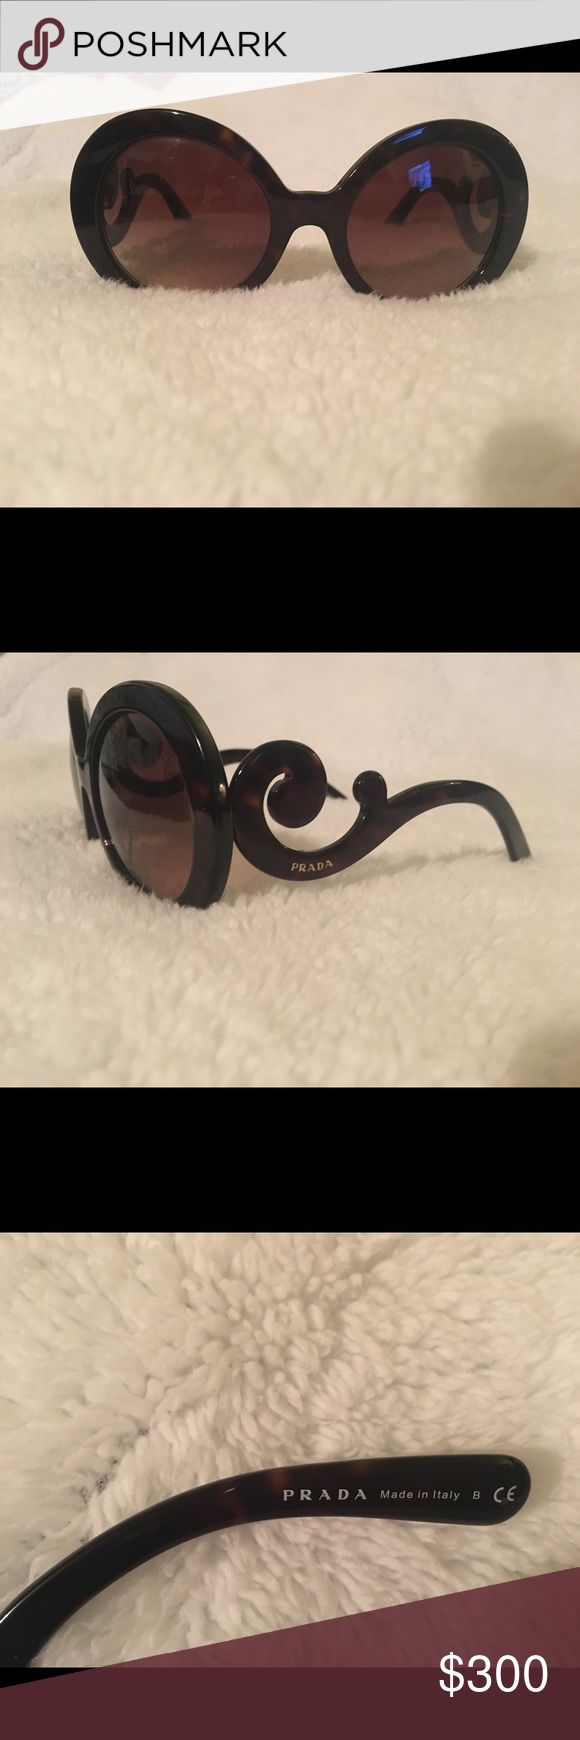 Authentic Prada Baroque sunglasses They are like new. Do not have receipt but comes with everyhing that the original purchase came with. Prada Accessories Sunglasses